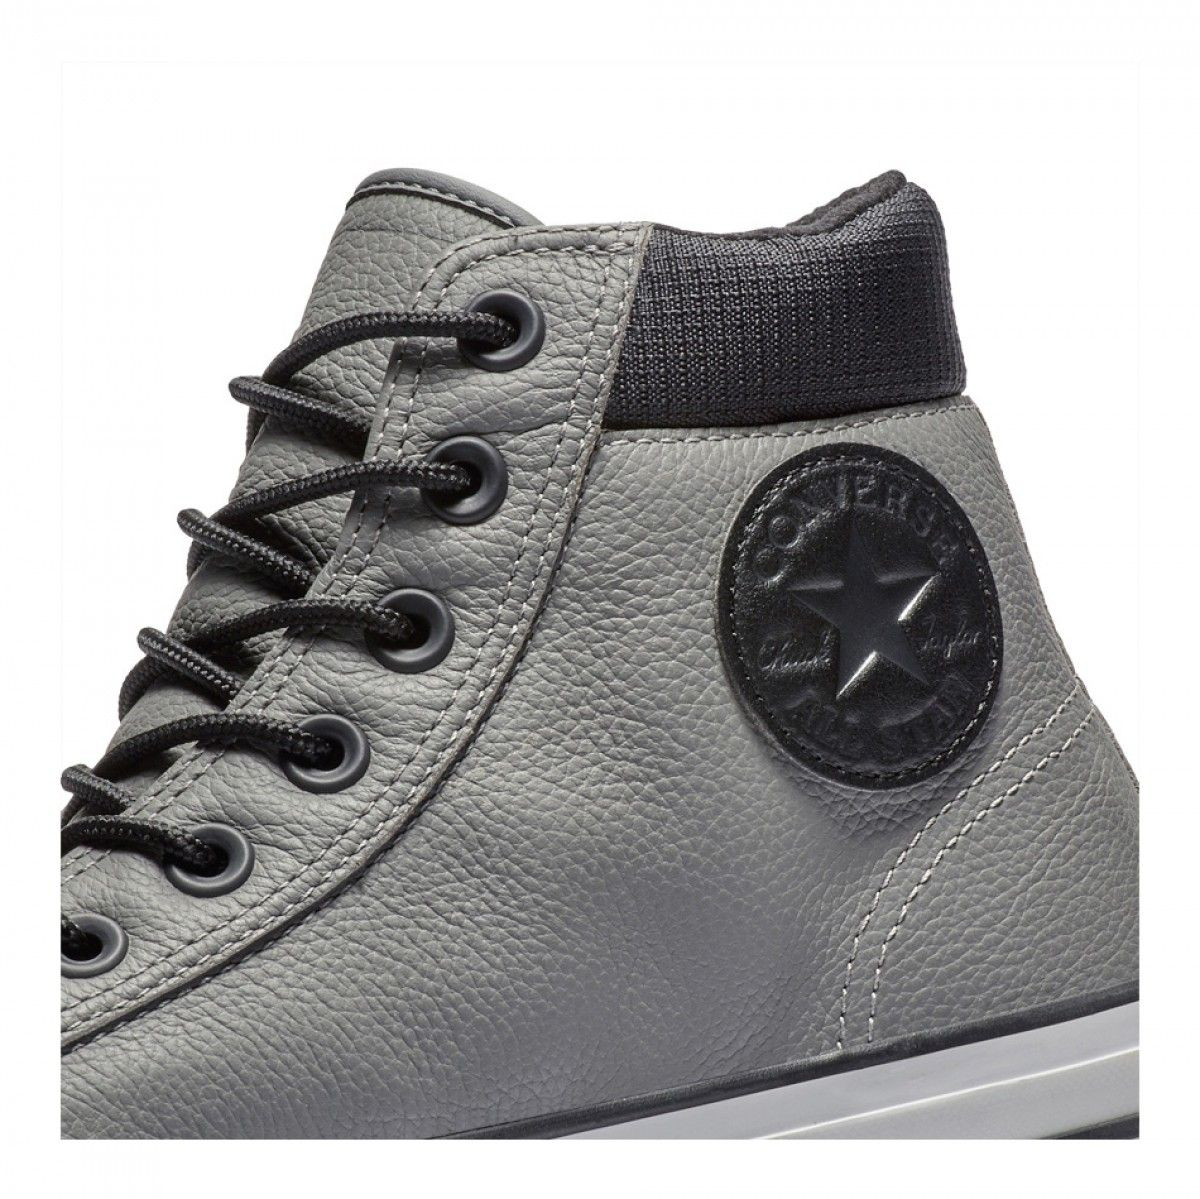 24c4aca72bab92 Converse Chuck Taylor All Star Hi Top Mason Black White in 2019 ...